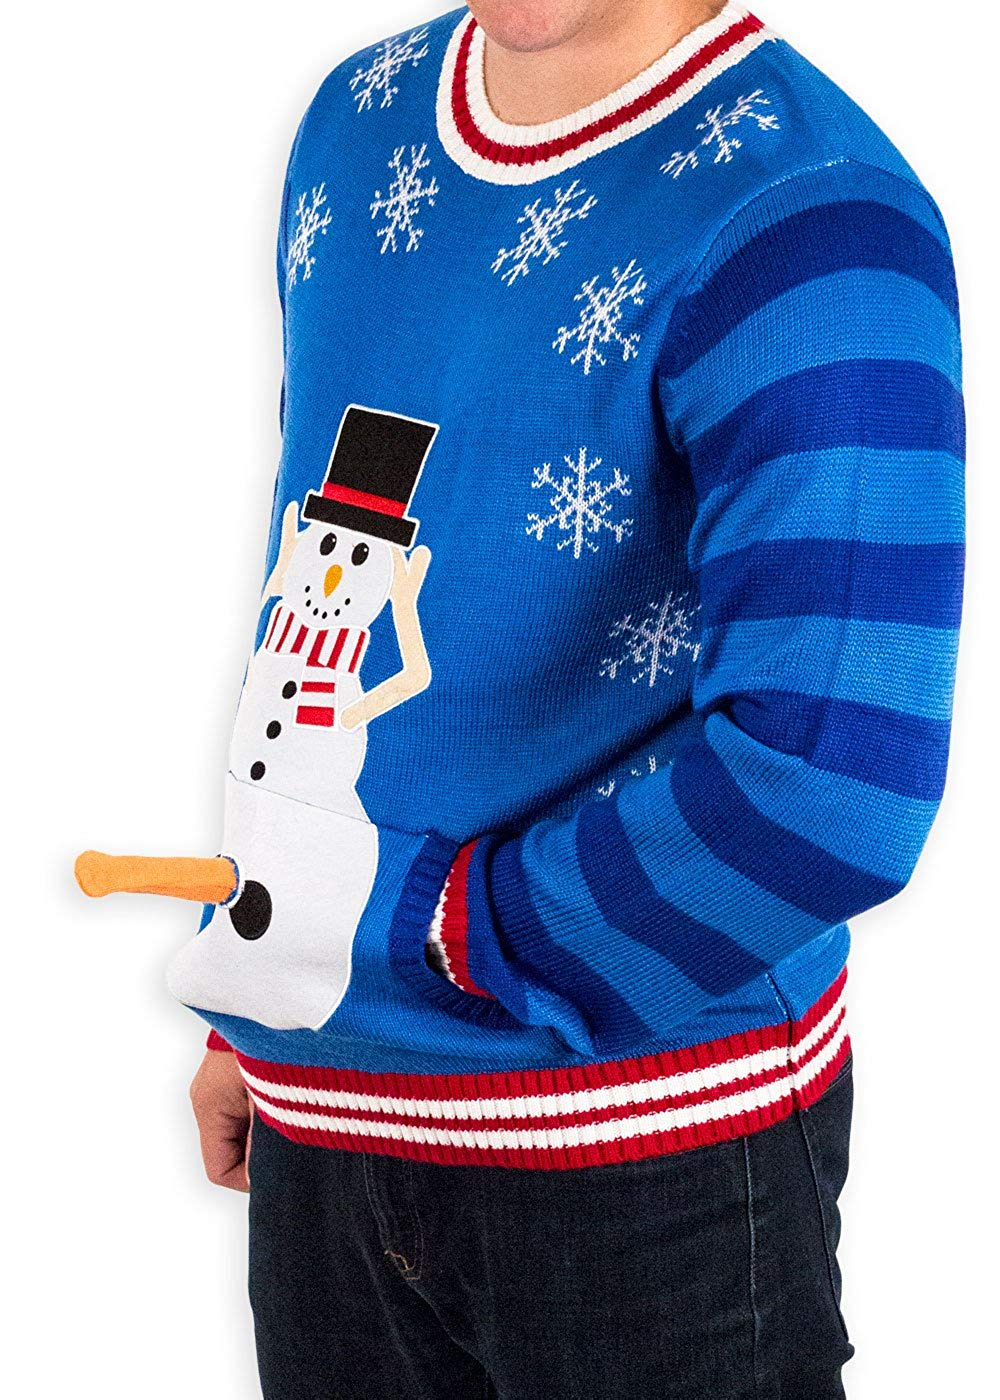 Naughty Christmas Sweater With 3D carrot erection